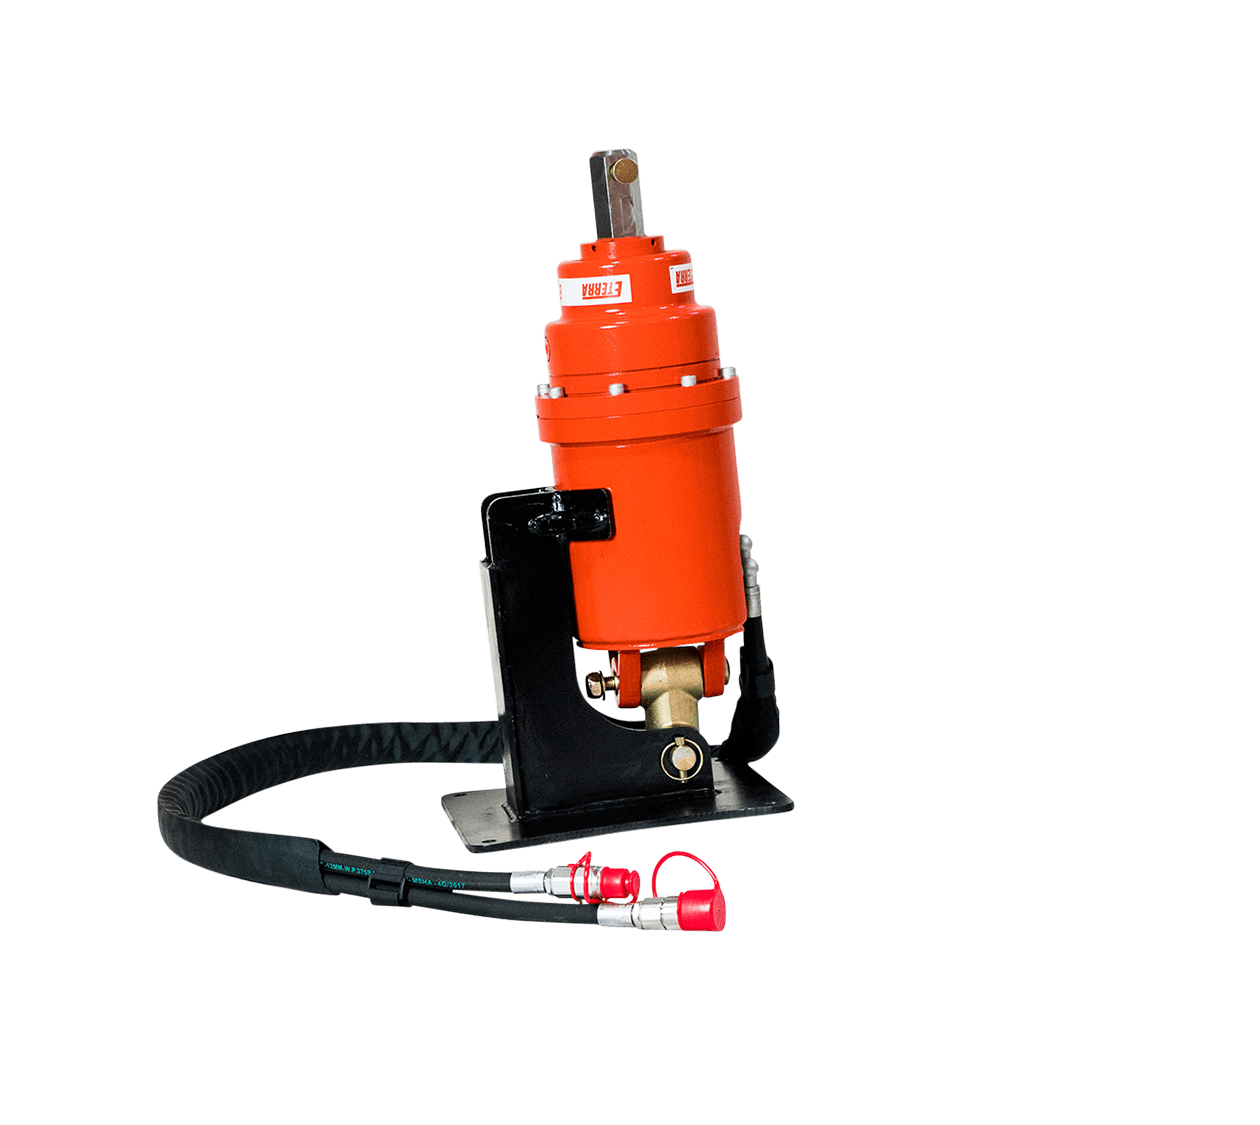 Eterra Excavator auger drive with hoses.